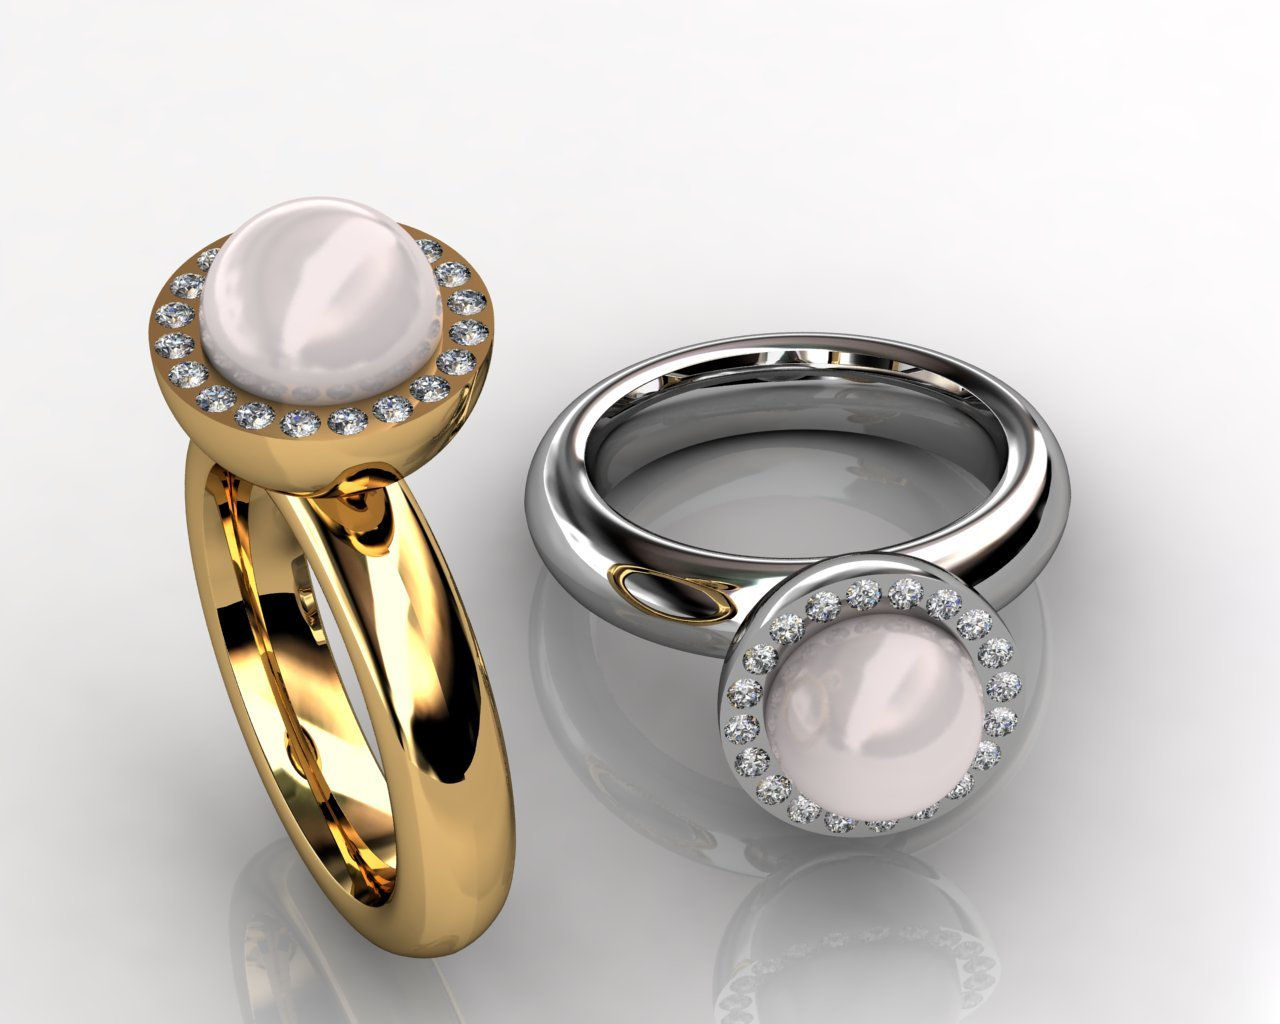 pearl cup rings with diamonds.jpg